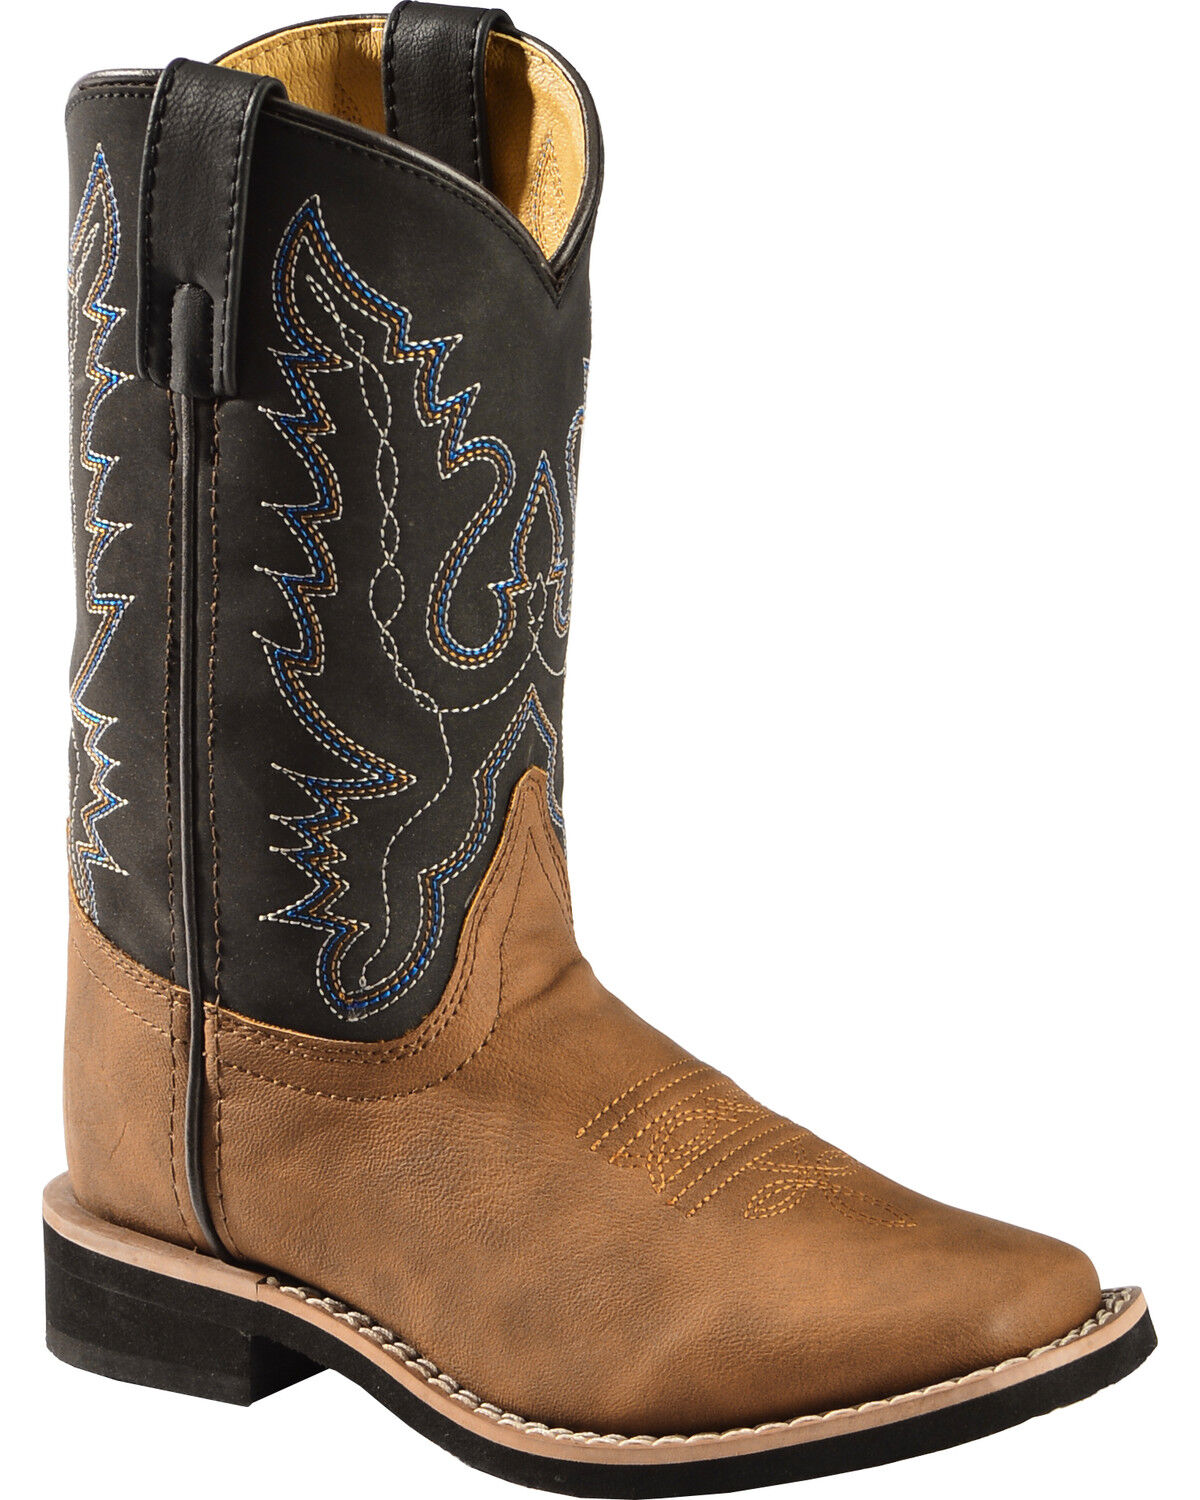 Kids Western Boots Amp Shoes Boot Barn